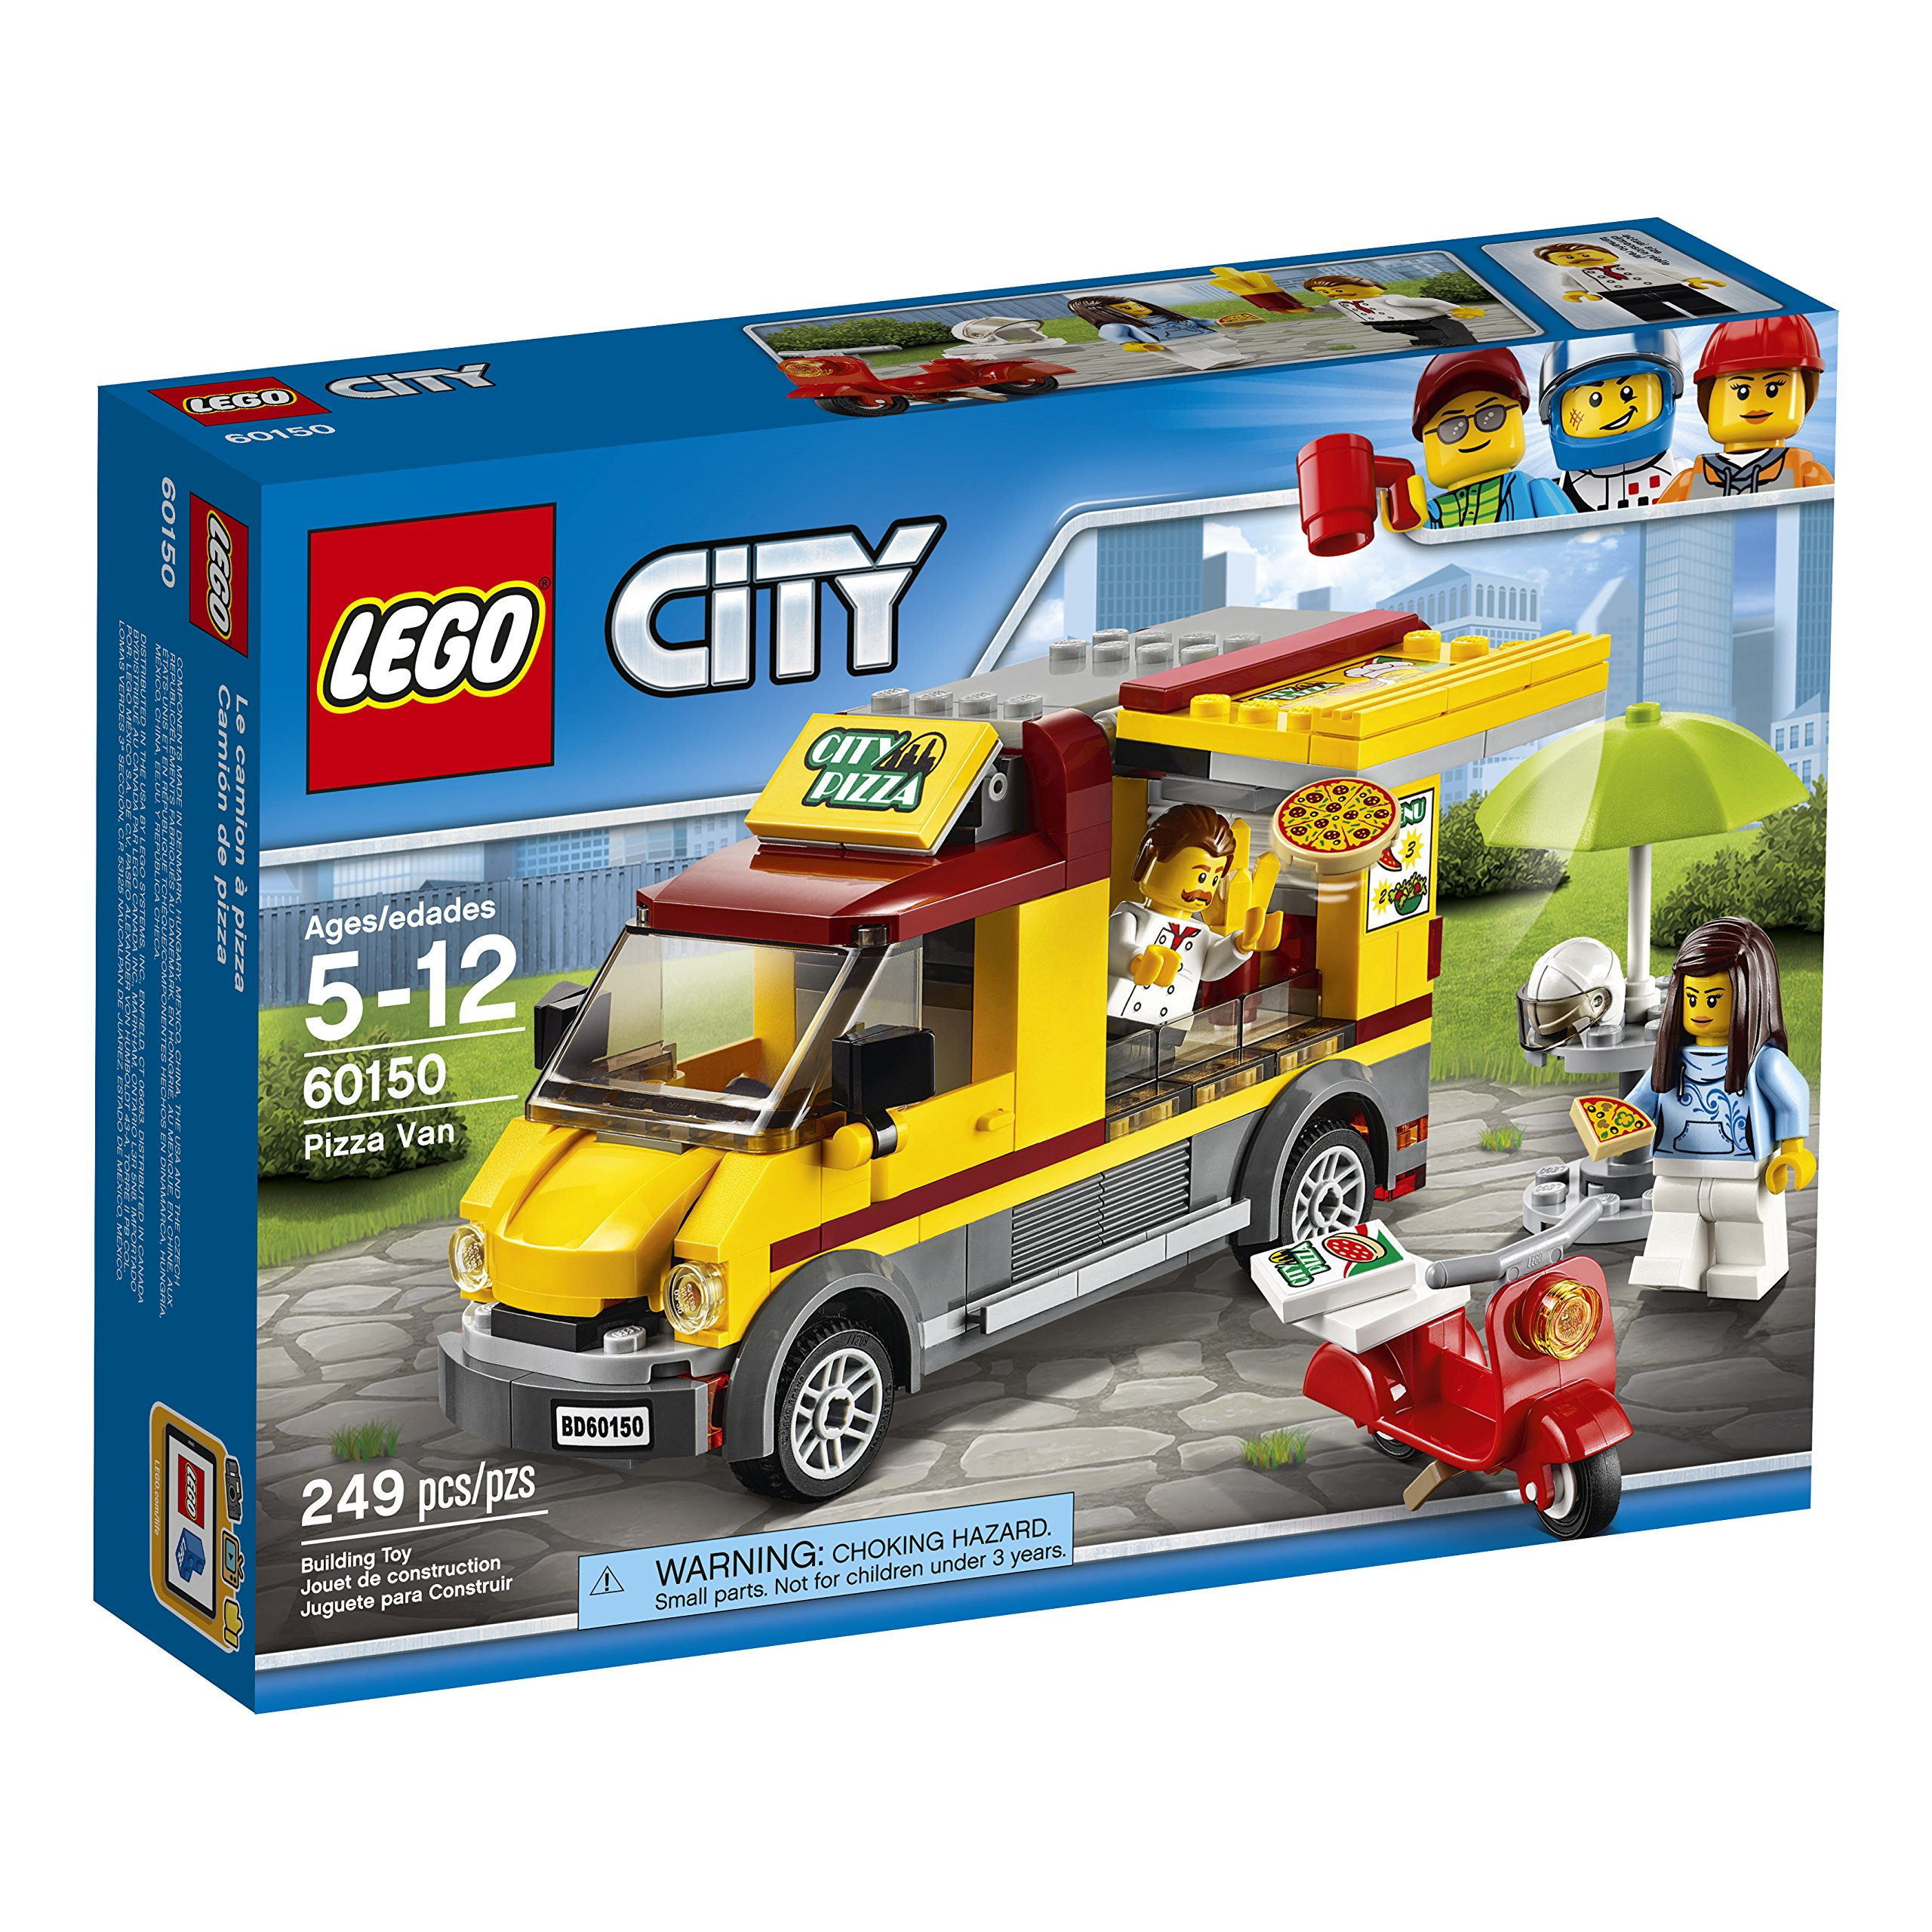 LEGO City Great Vehicles Pizza Van 60150 Construction Toy (249 Pieces) by LEGO